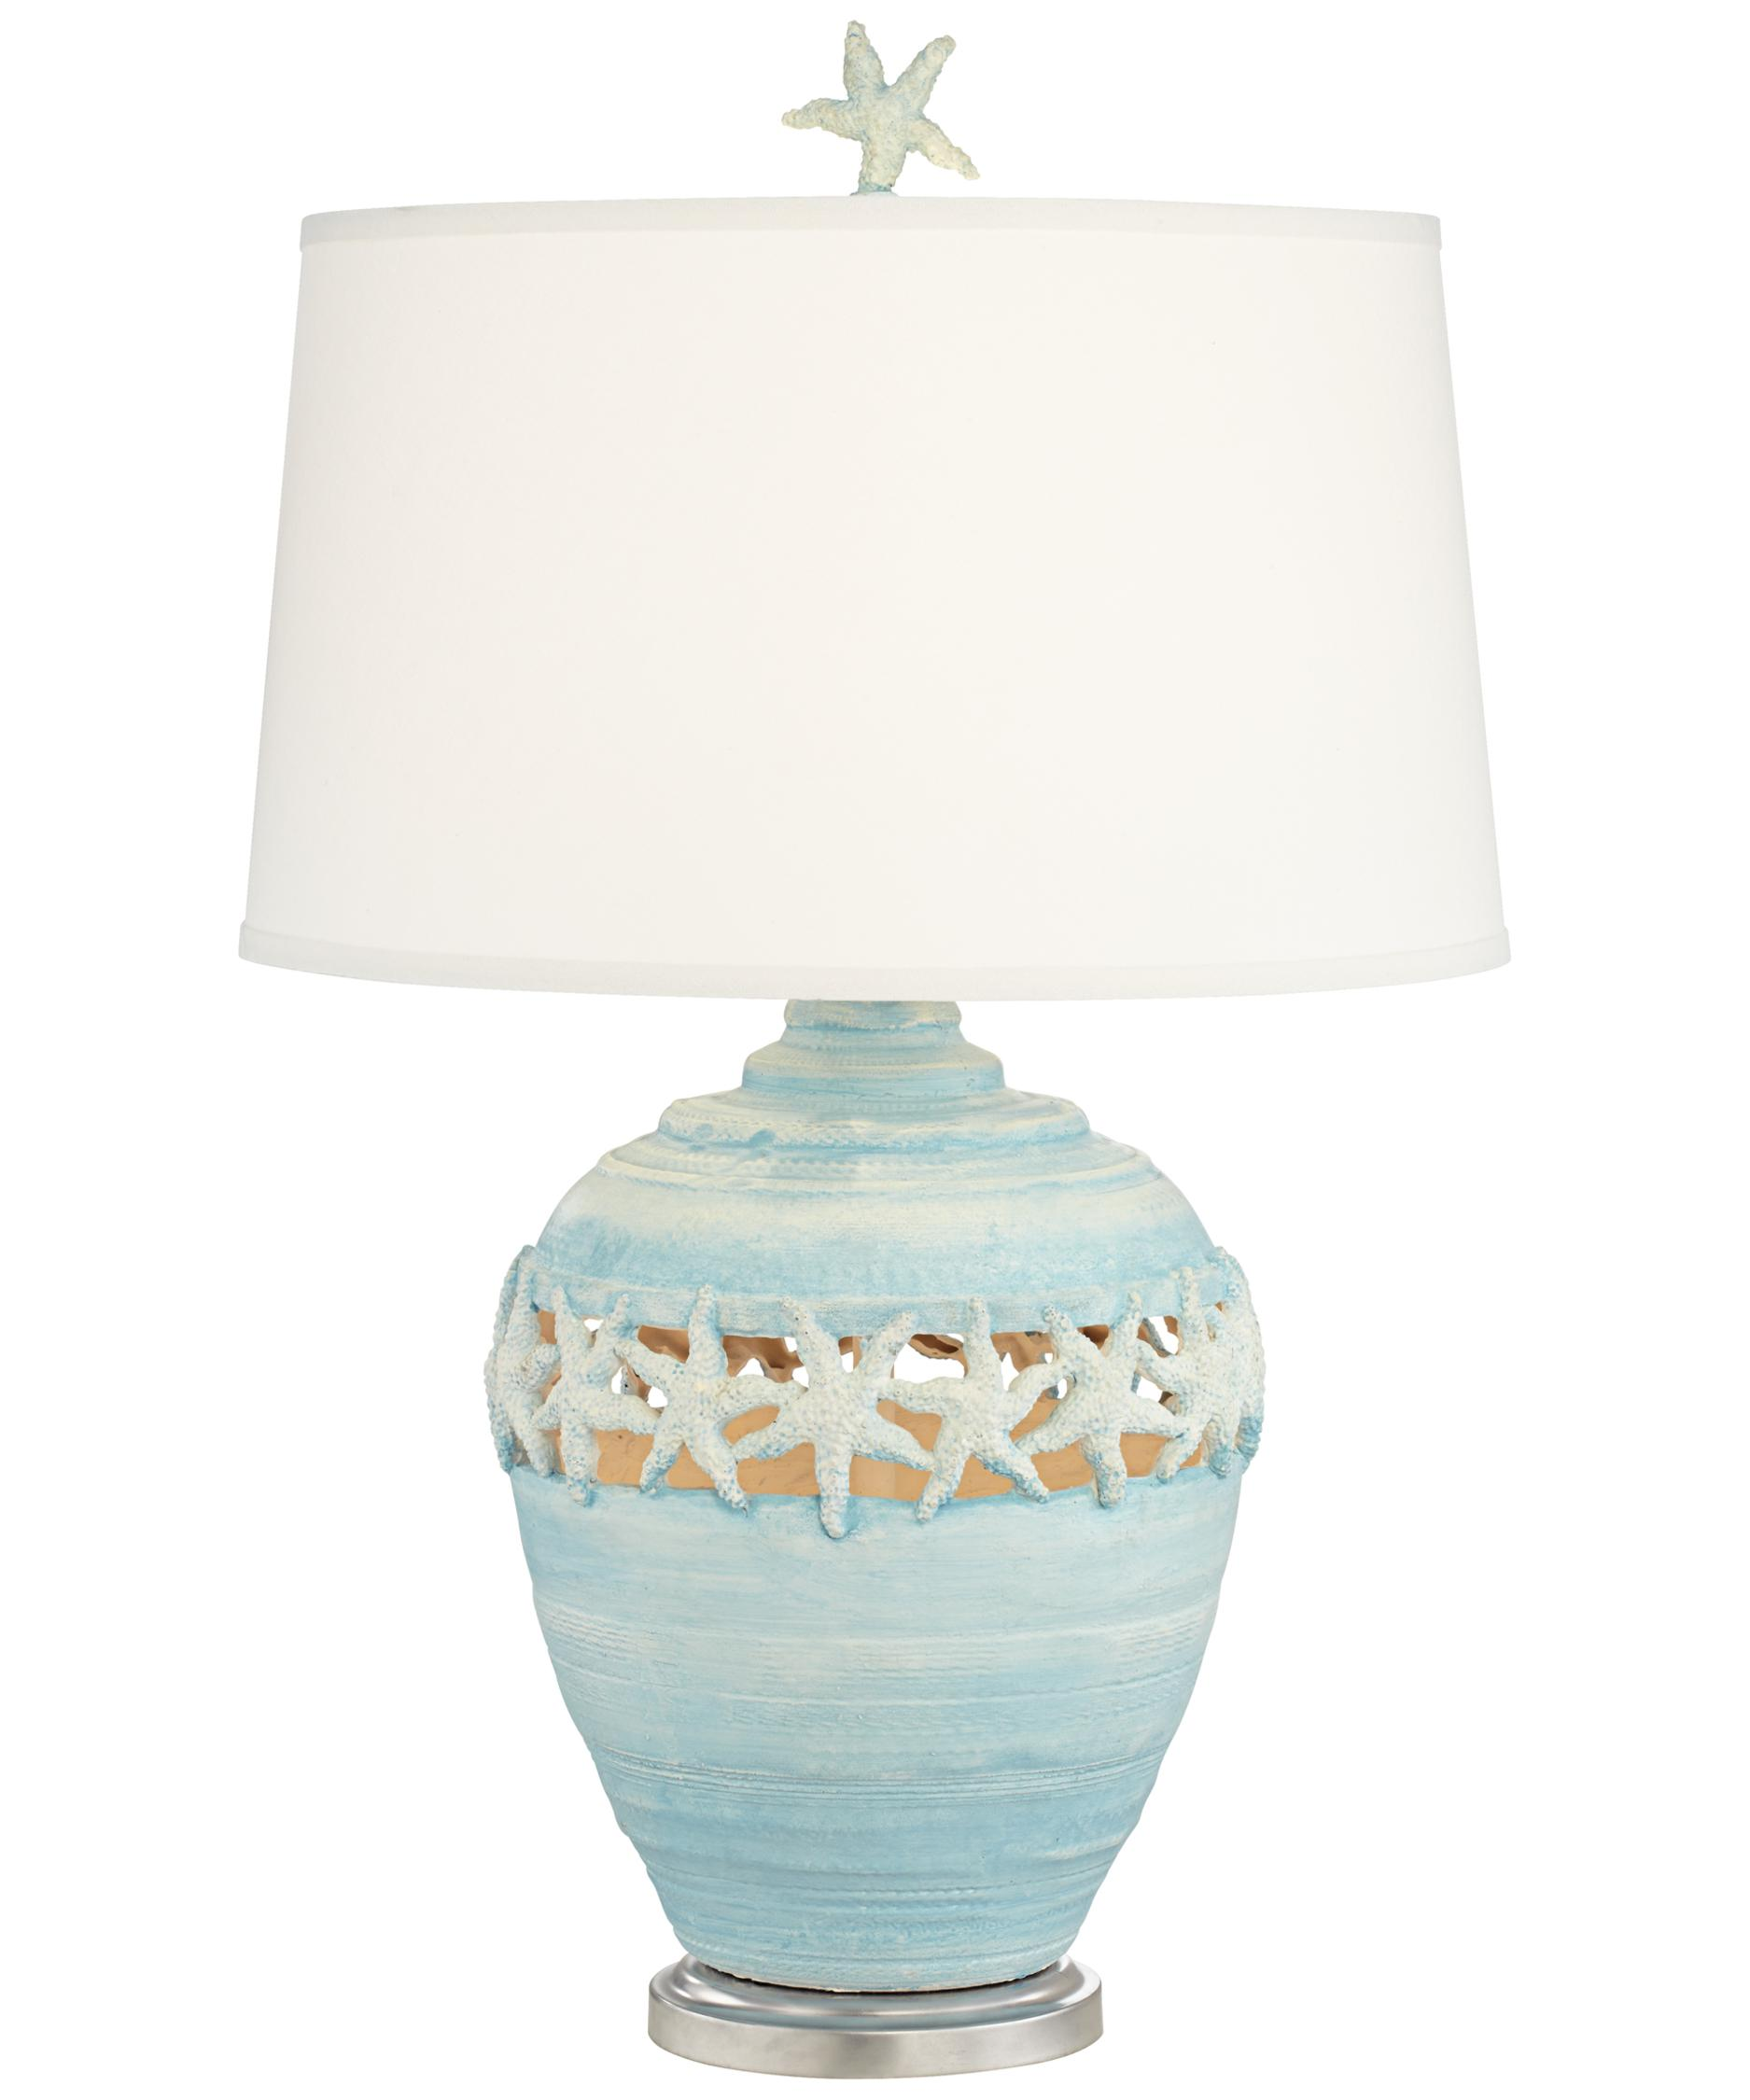 Shown In Blue Finish And Faux Silk Fabric Shade